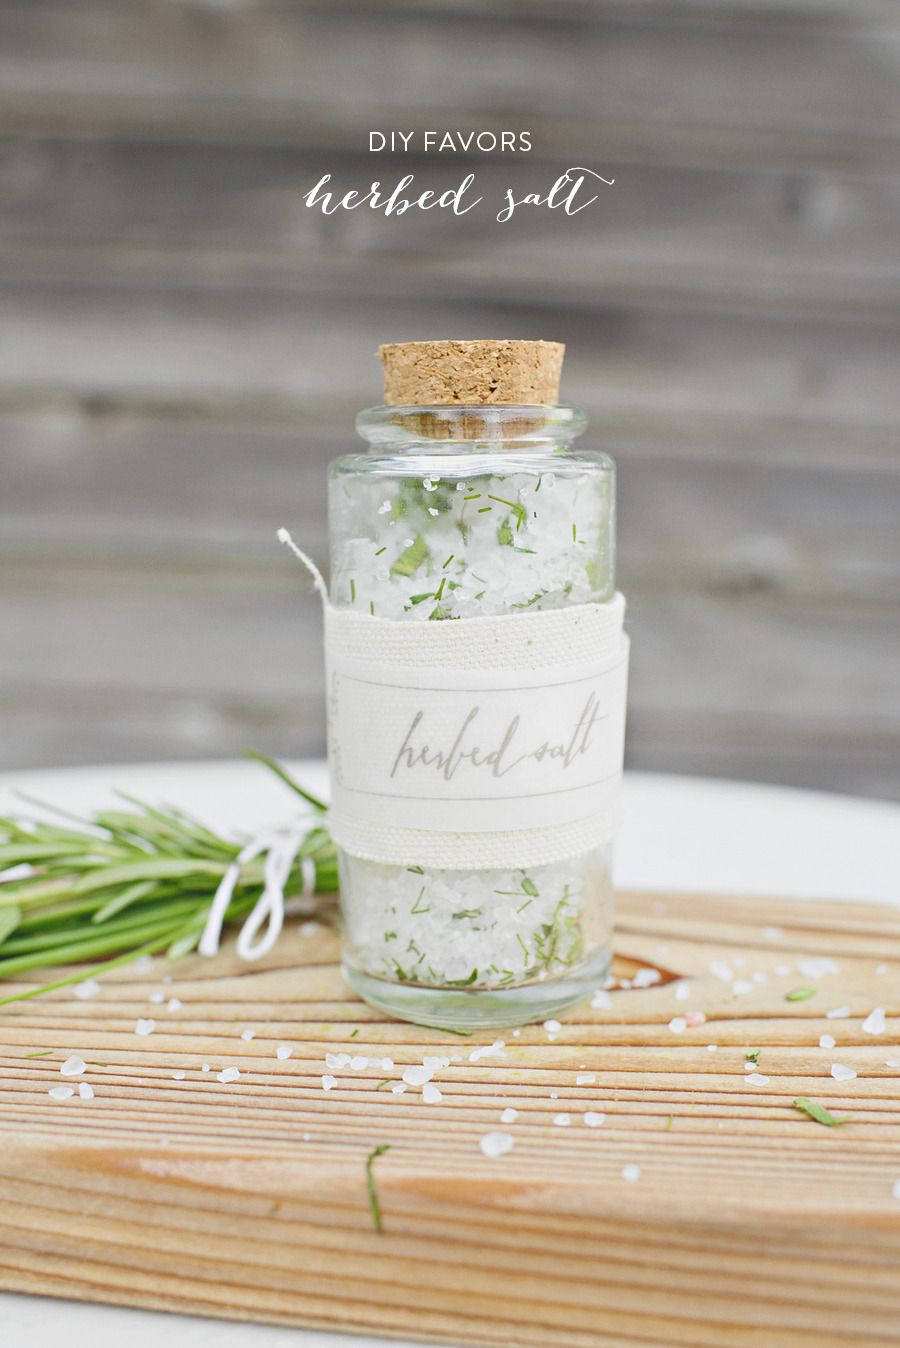 DIY Herbed Salt Favors | Recipe | Event design, Favors and Herbs